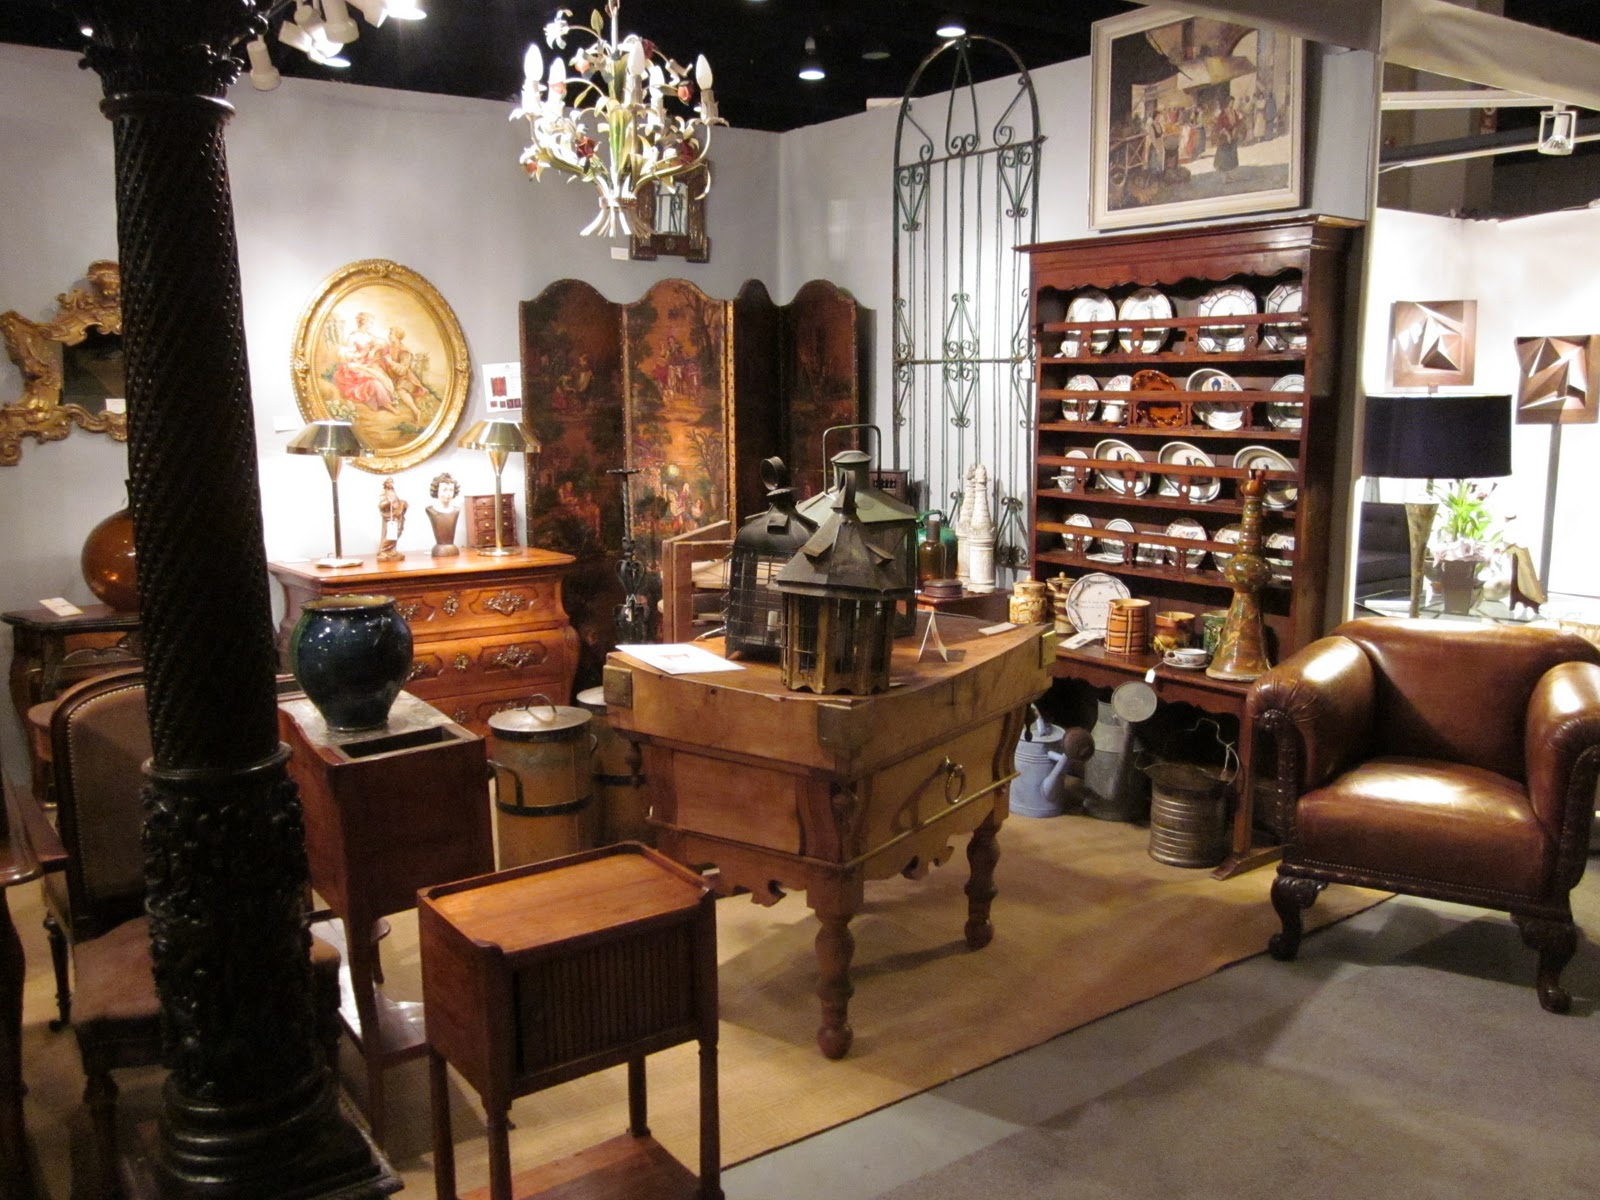 French Country Antiques: Antique and Garden show in ...